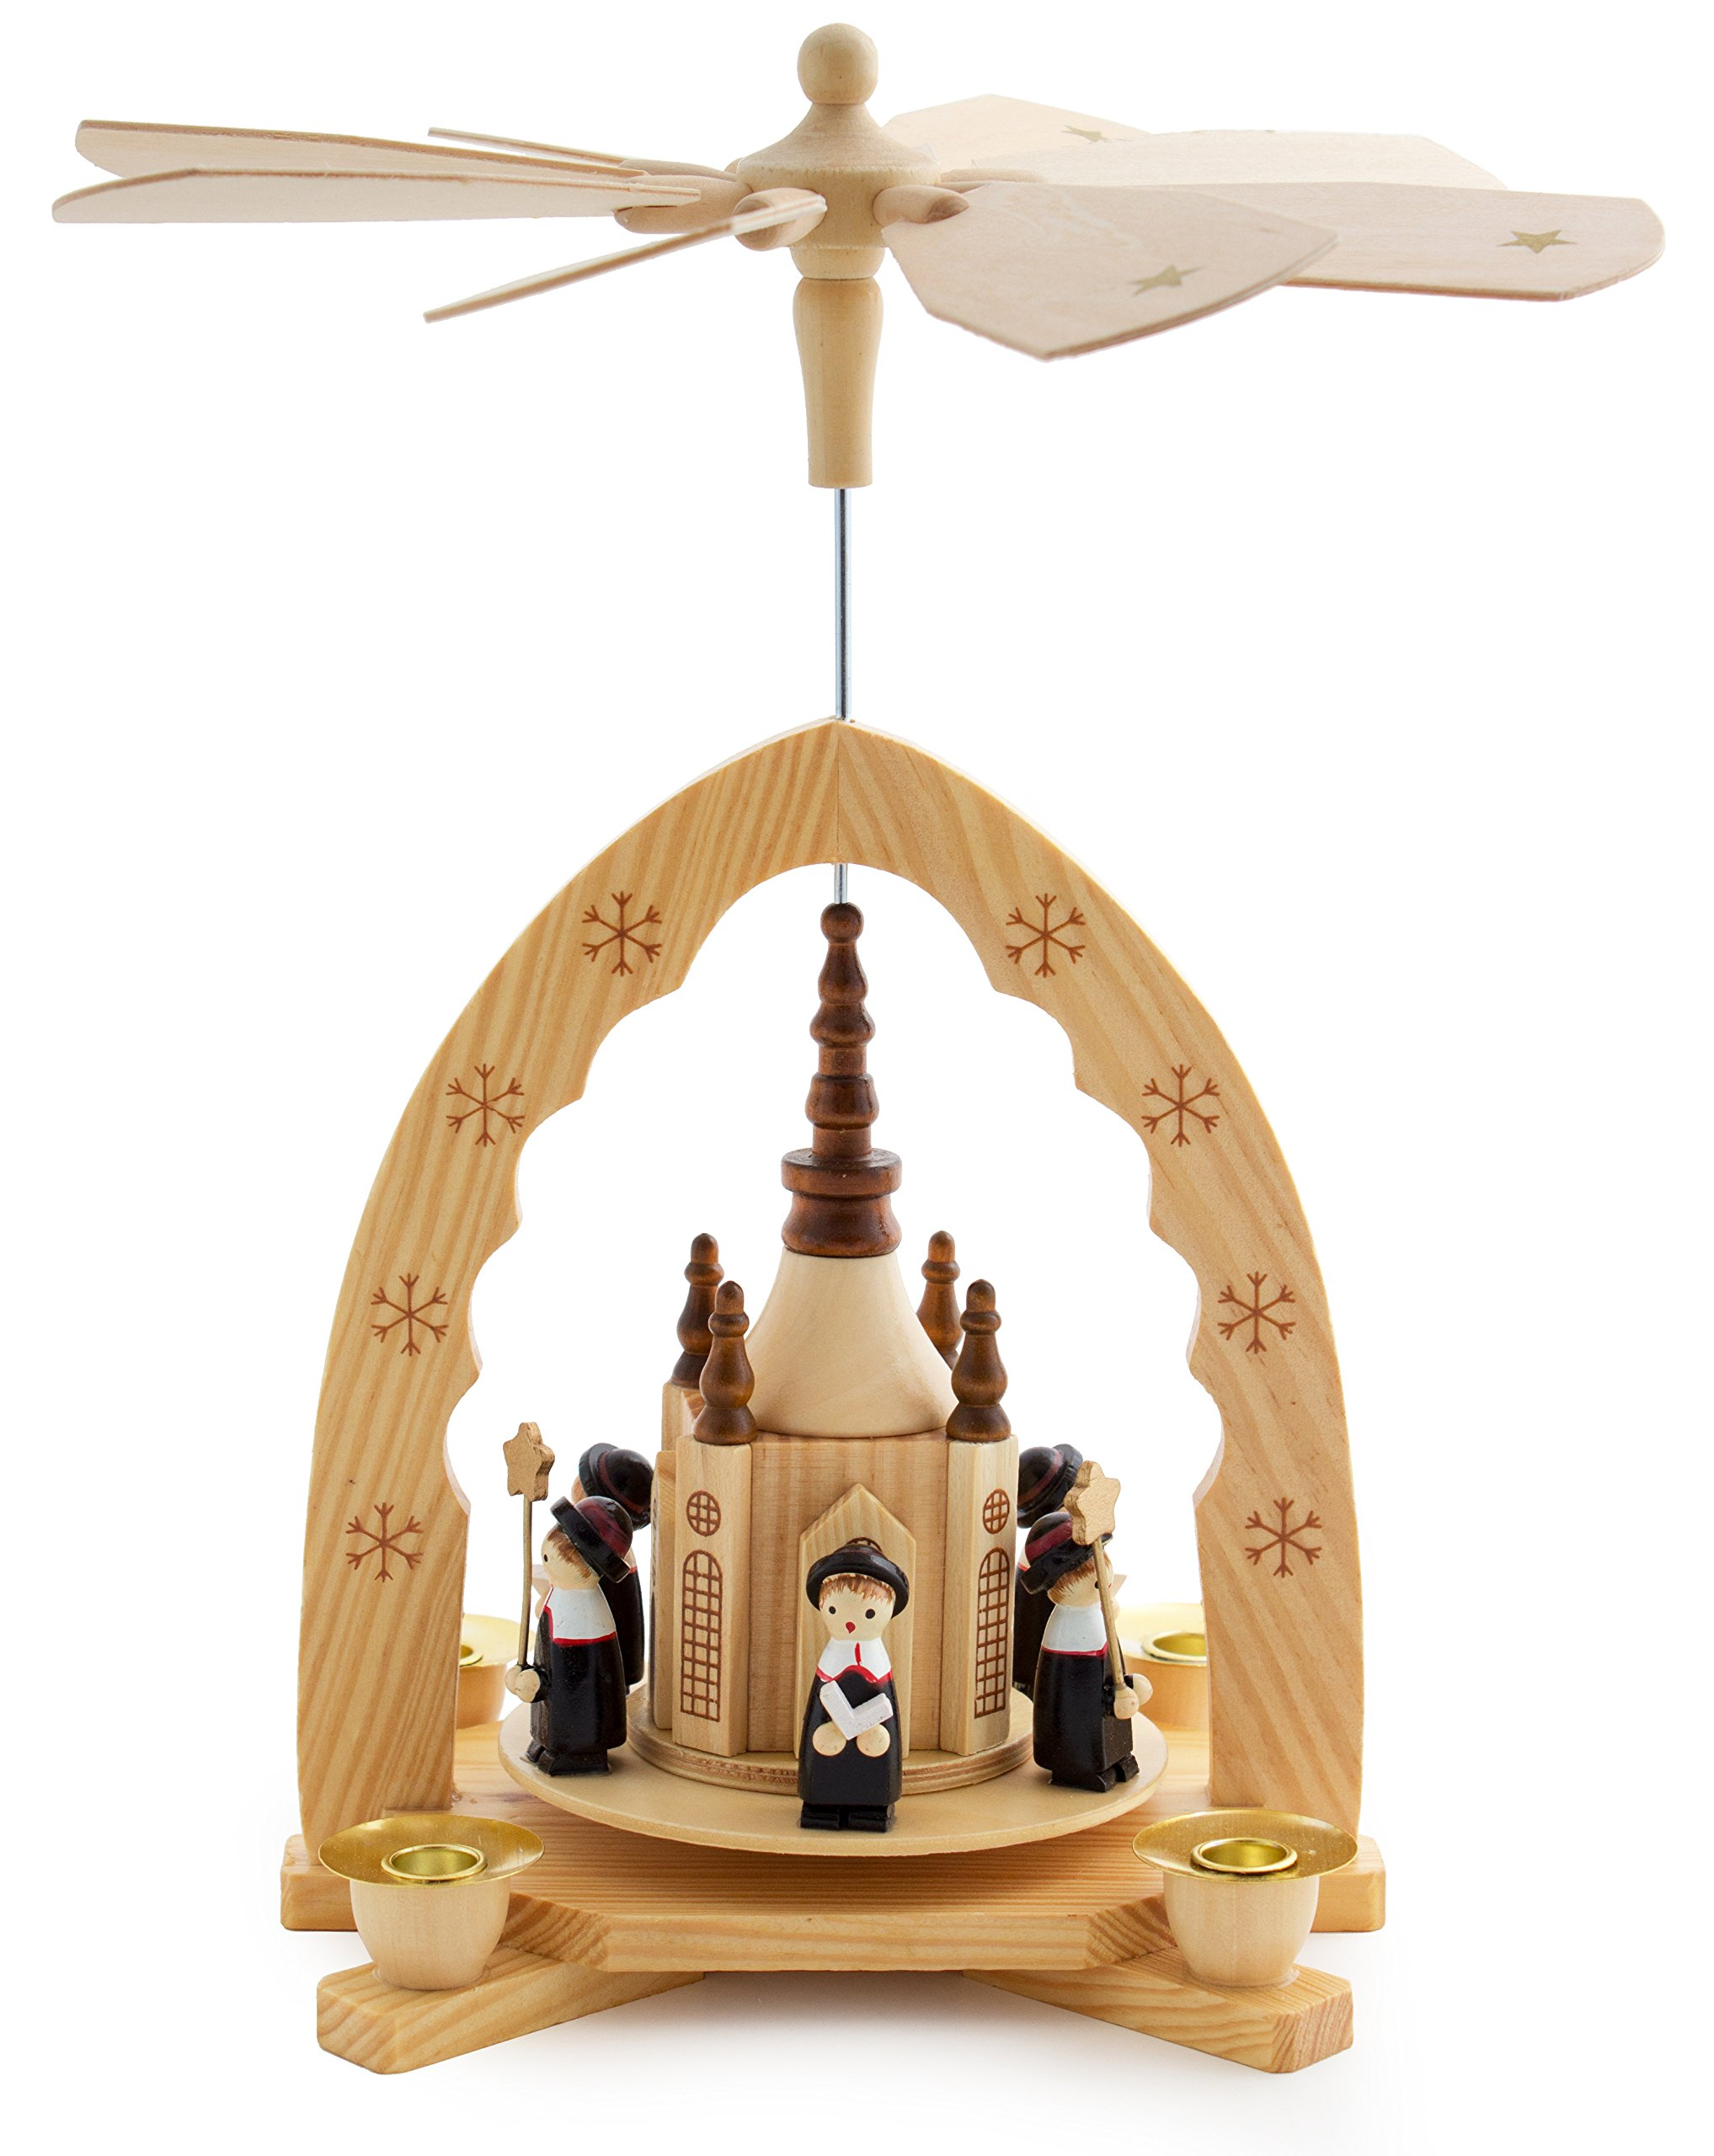 BRUBAKER Christmas Decoration Pyramid 12 Inches Nativity Play - Christmas Scene with Handpainted Figures - Limited Edition 500 Pieces Only - Including 20 Candles (Made in Germany)